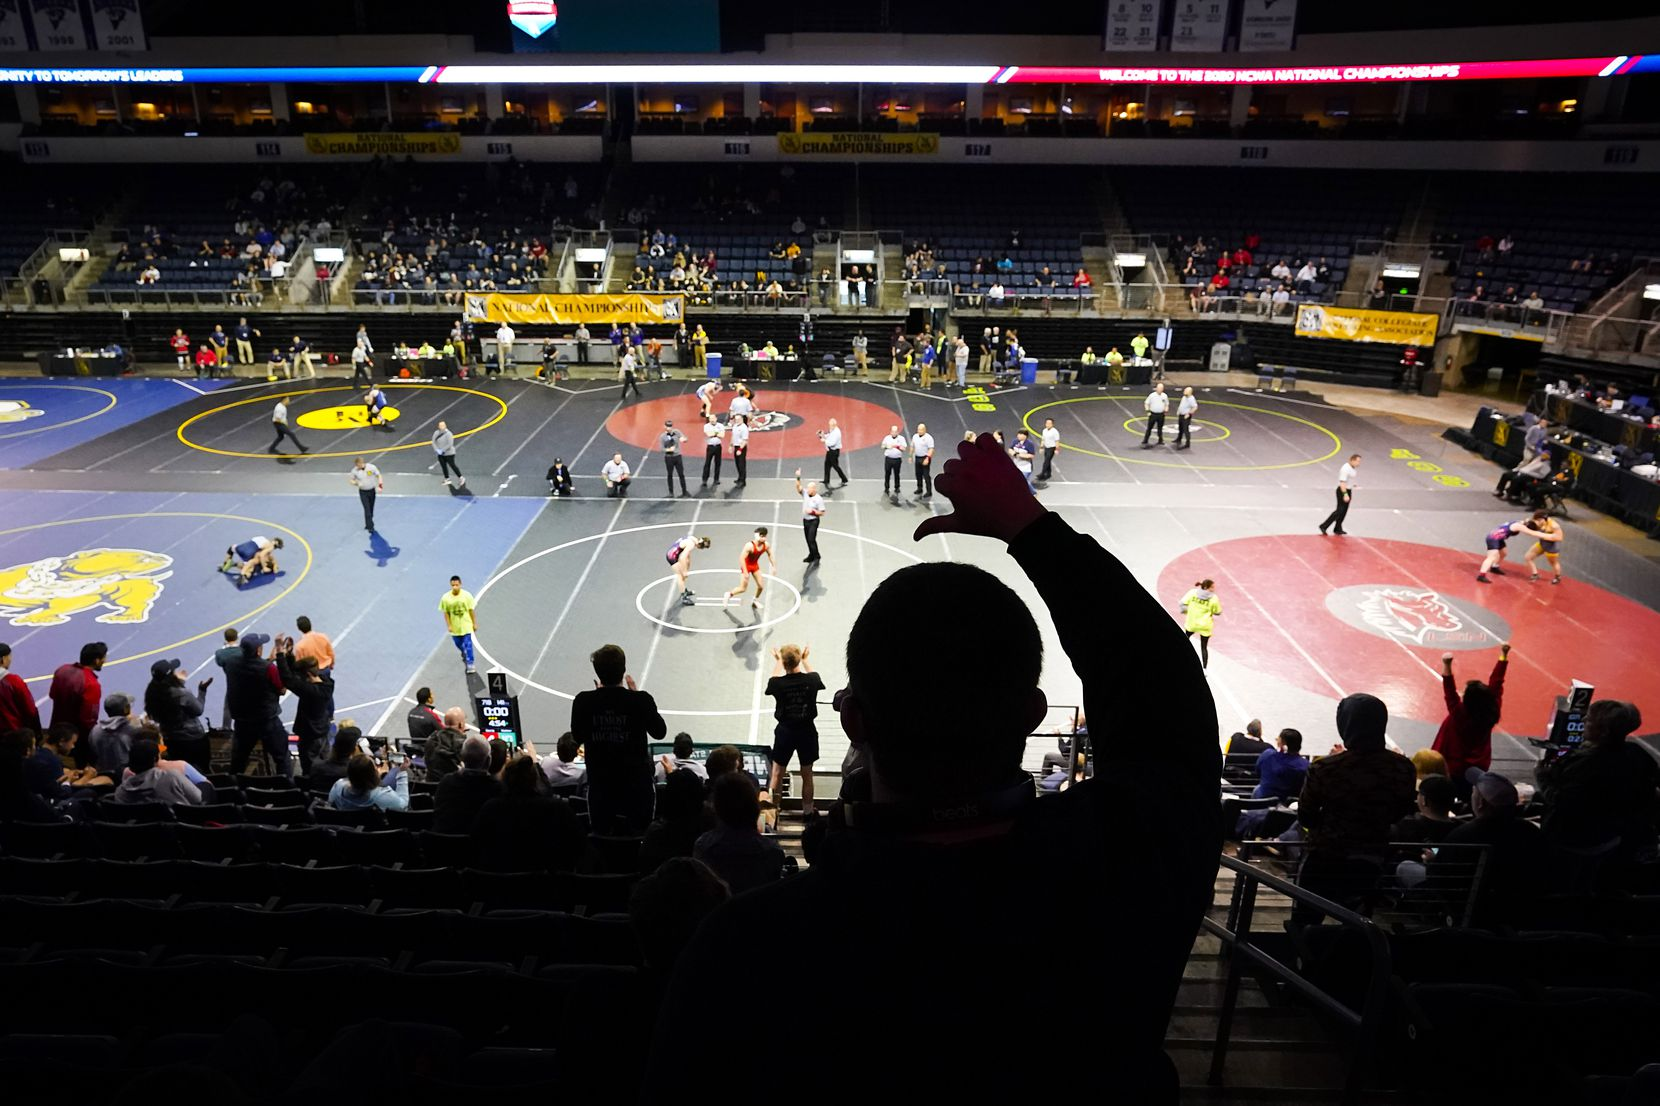 A fan gives a thumbs down to a referees decision during the NCWA national championships at the Allen Events Center on Friday, March 13, 2020, in Allen, Texas.